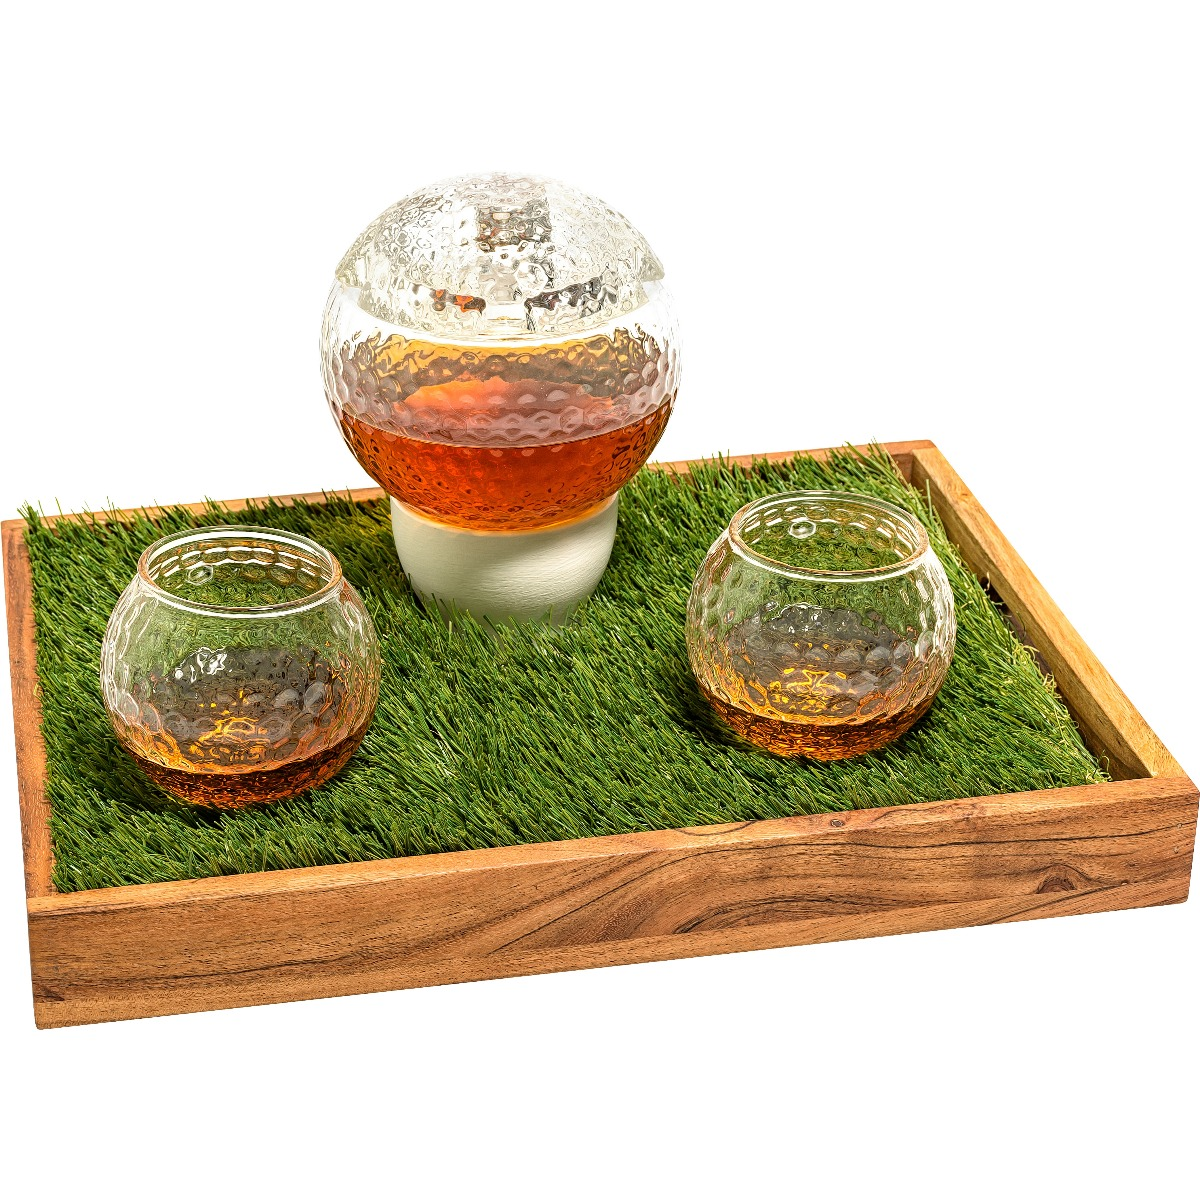 Golf Decanter Set for Golf Lovers, a Golf-themed gift